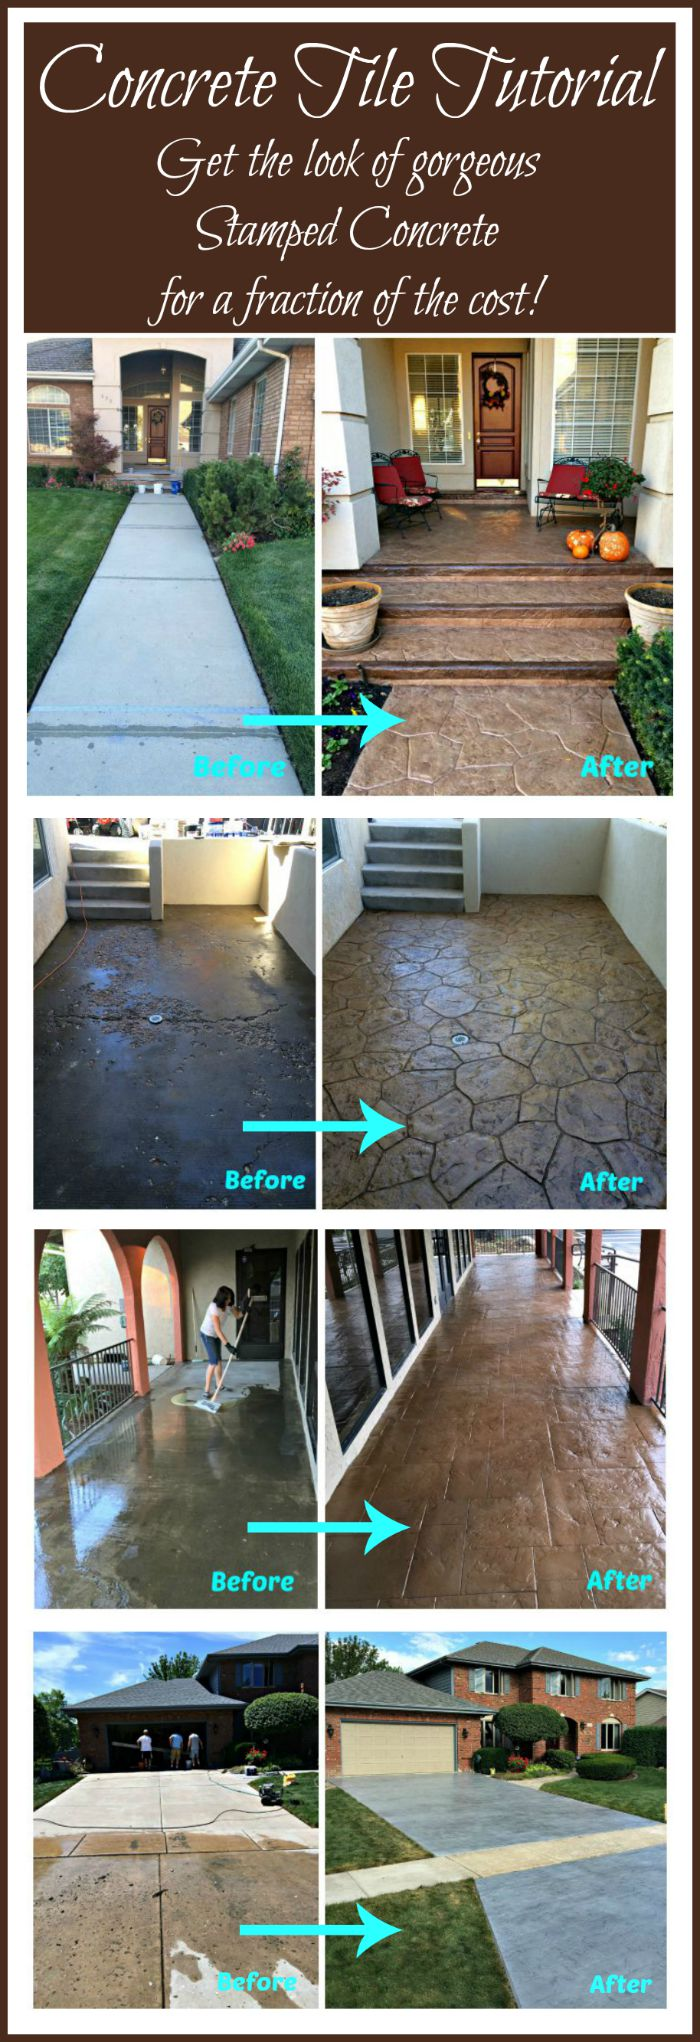 DIY CONCRETE TILE TUTORIAL